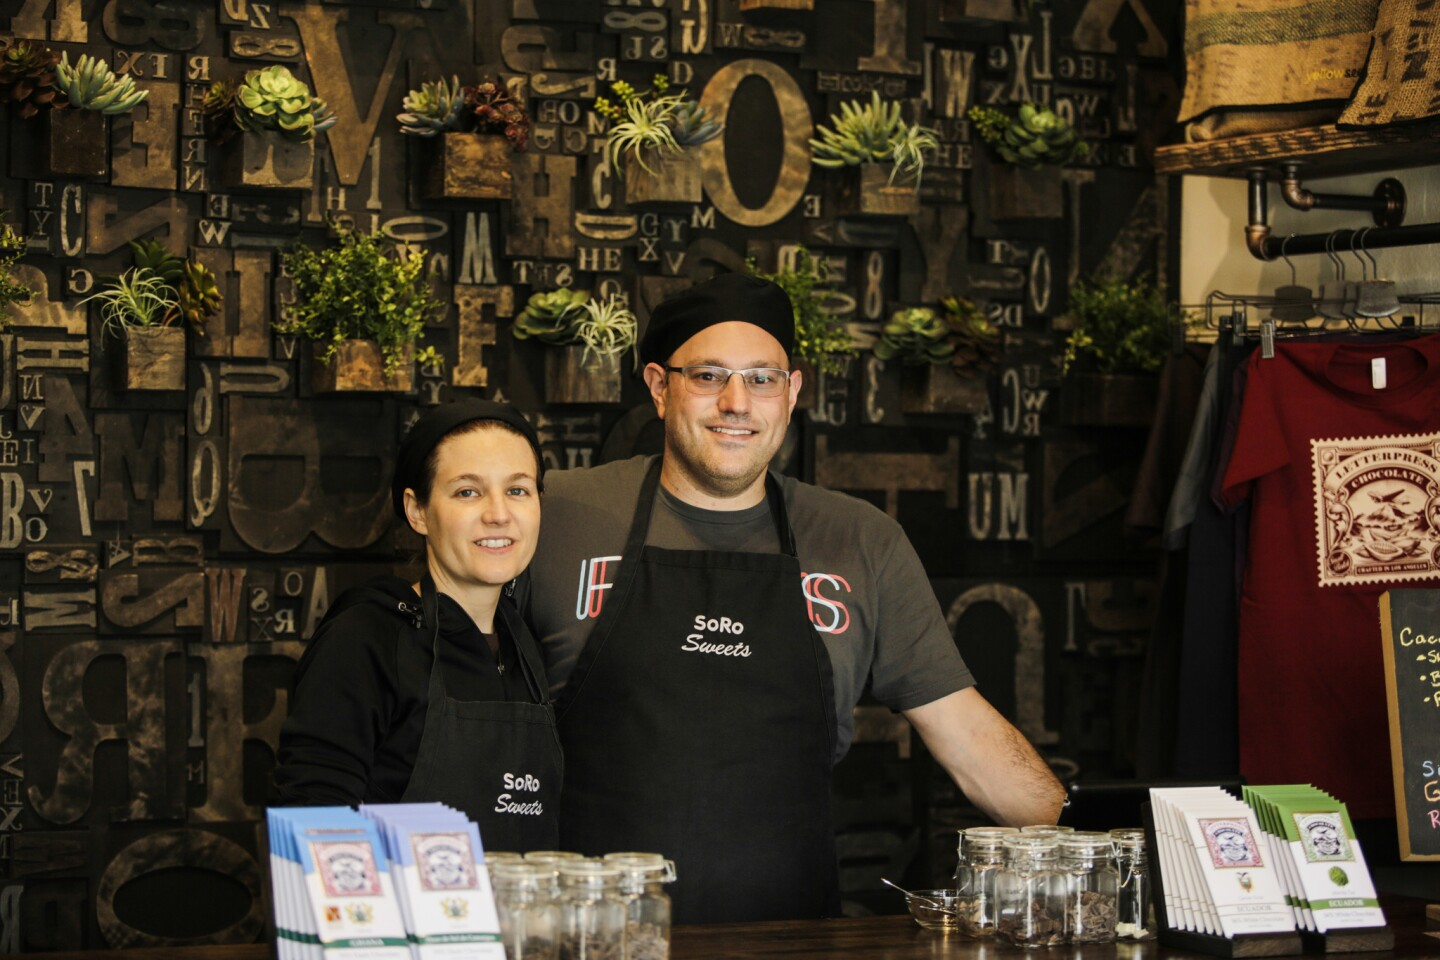 Husband-and-wife team Corey and David Menkes just opened their LetterPress Chocolate retail shop in Los Angeles' Beverlywood neighborhood though they've been making their bars at the Robertson Boulevard location for a while now.